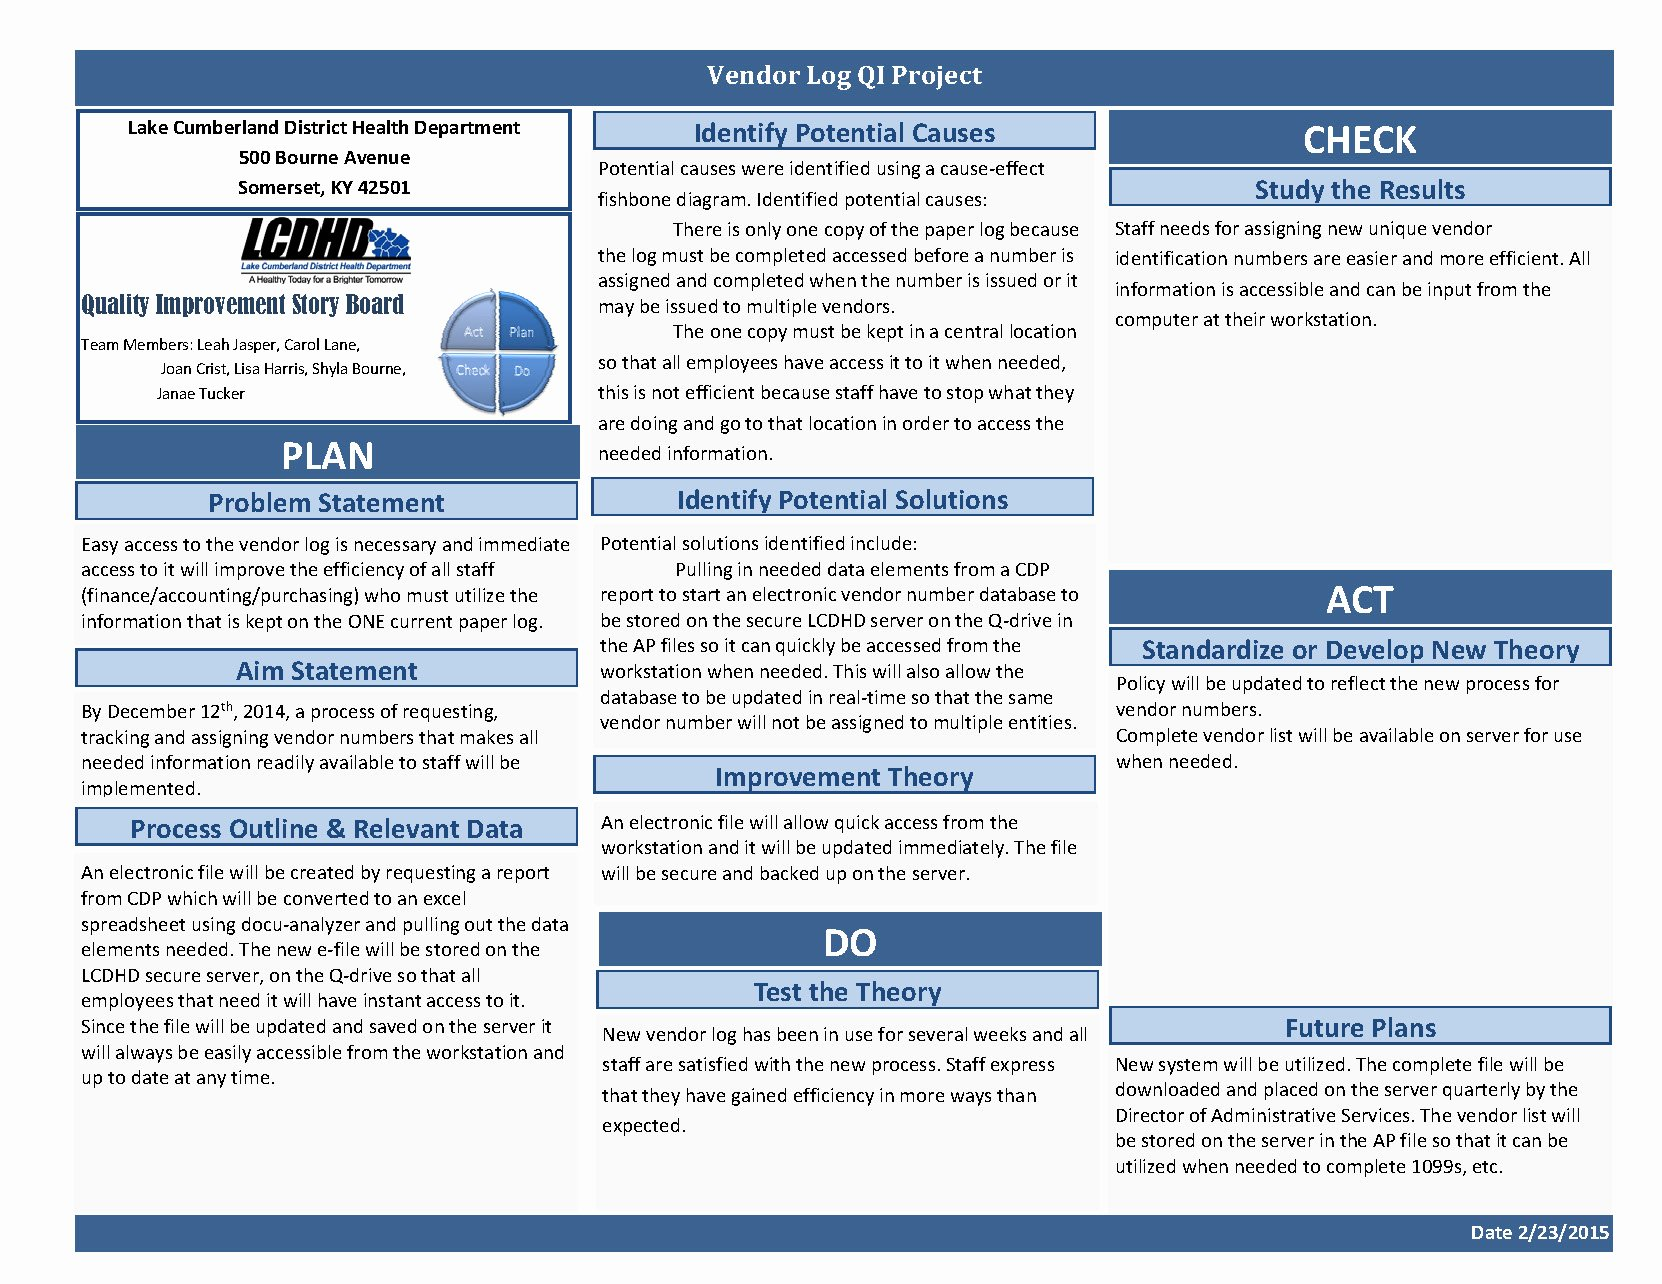 Quality Improvement Plan Template Healthcare Awesome Quality Improvement – Lake Cumberland District Health